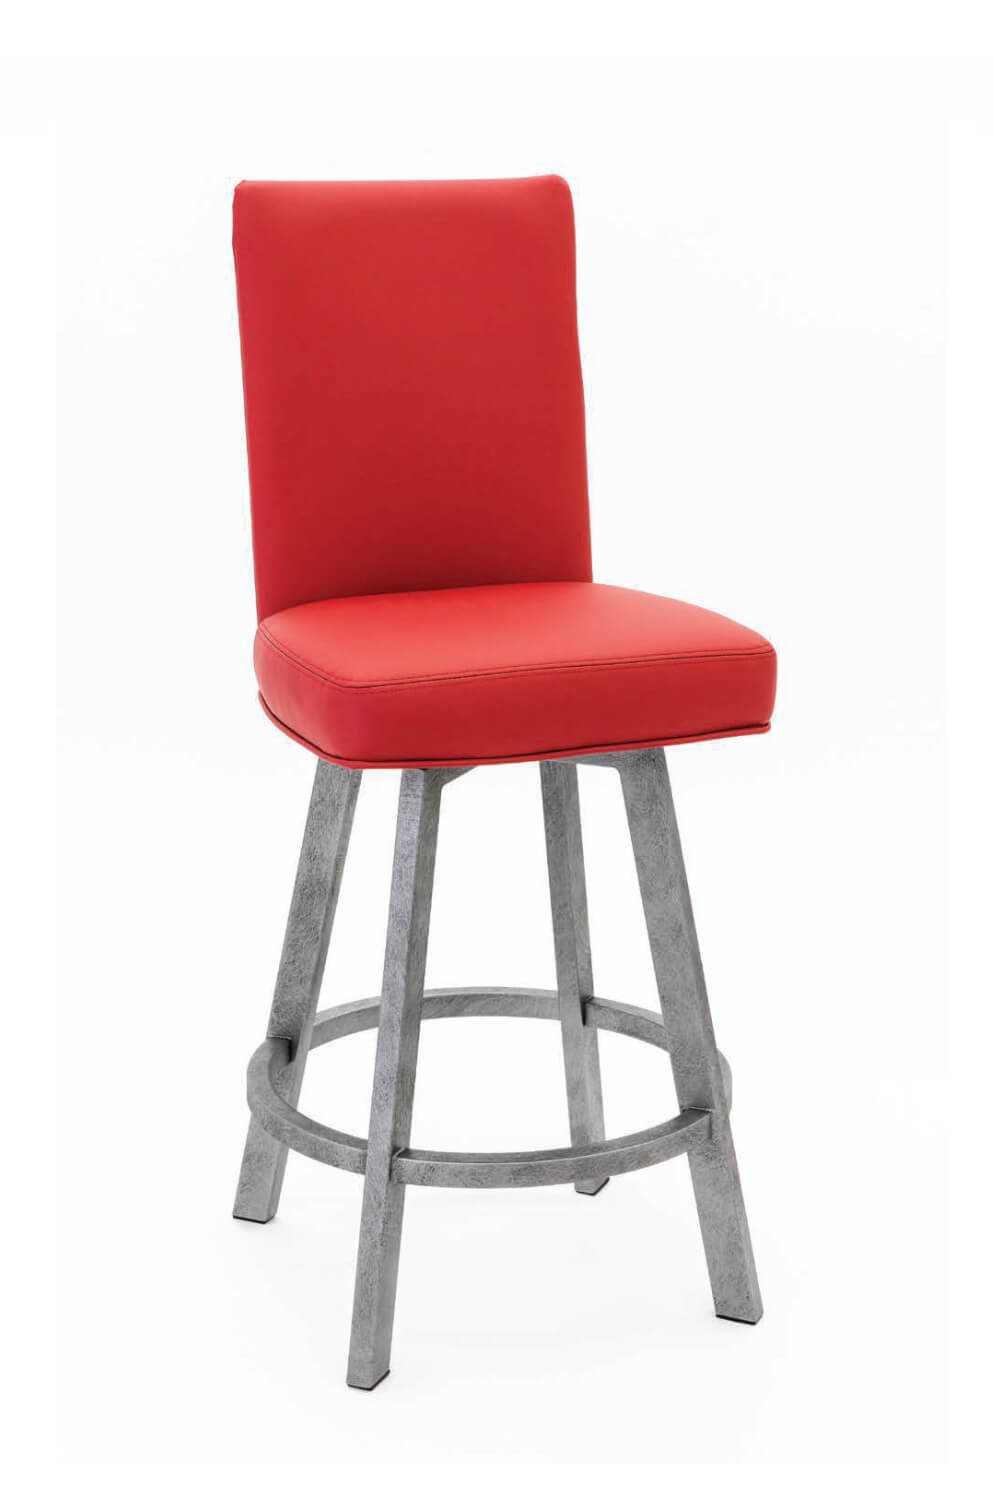 Wesley Allen's Jackson Upholstered Swivel Barstool with Tall Back and Metal Base and Red/Seat Back Cushion